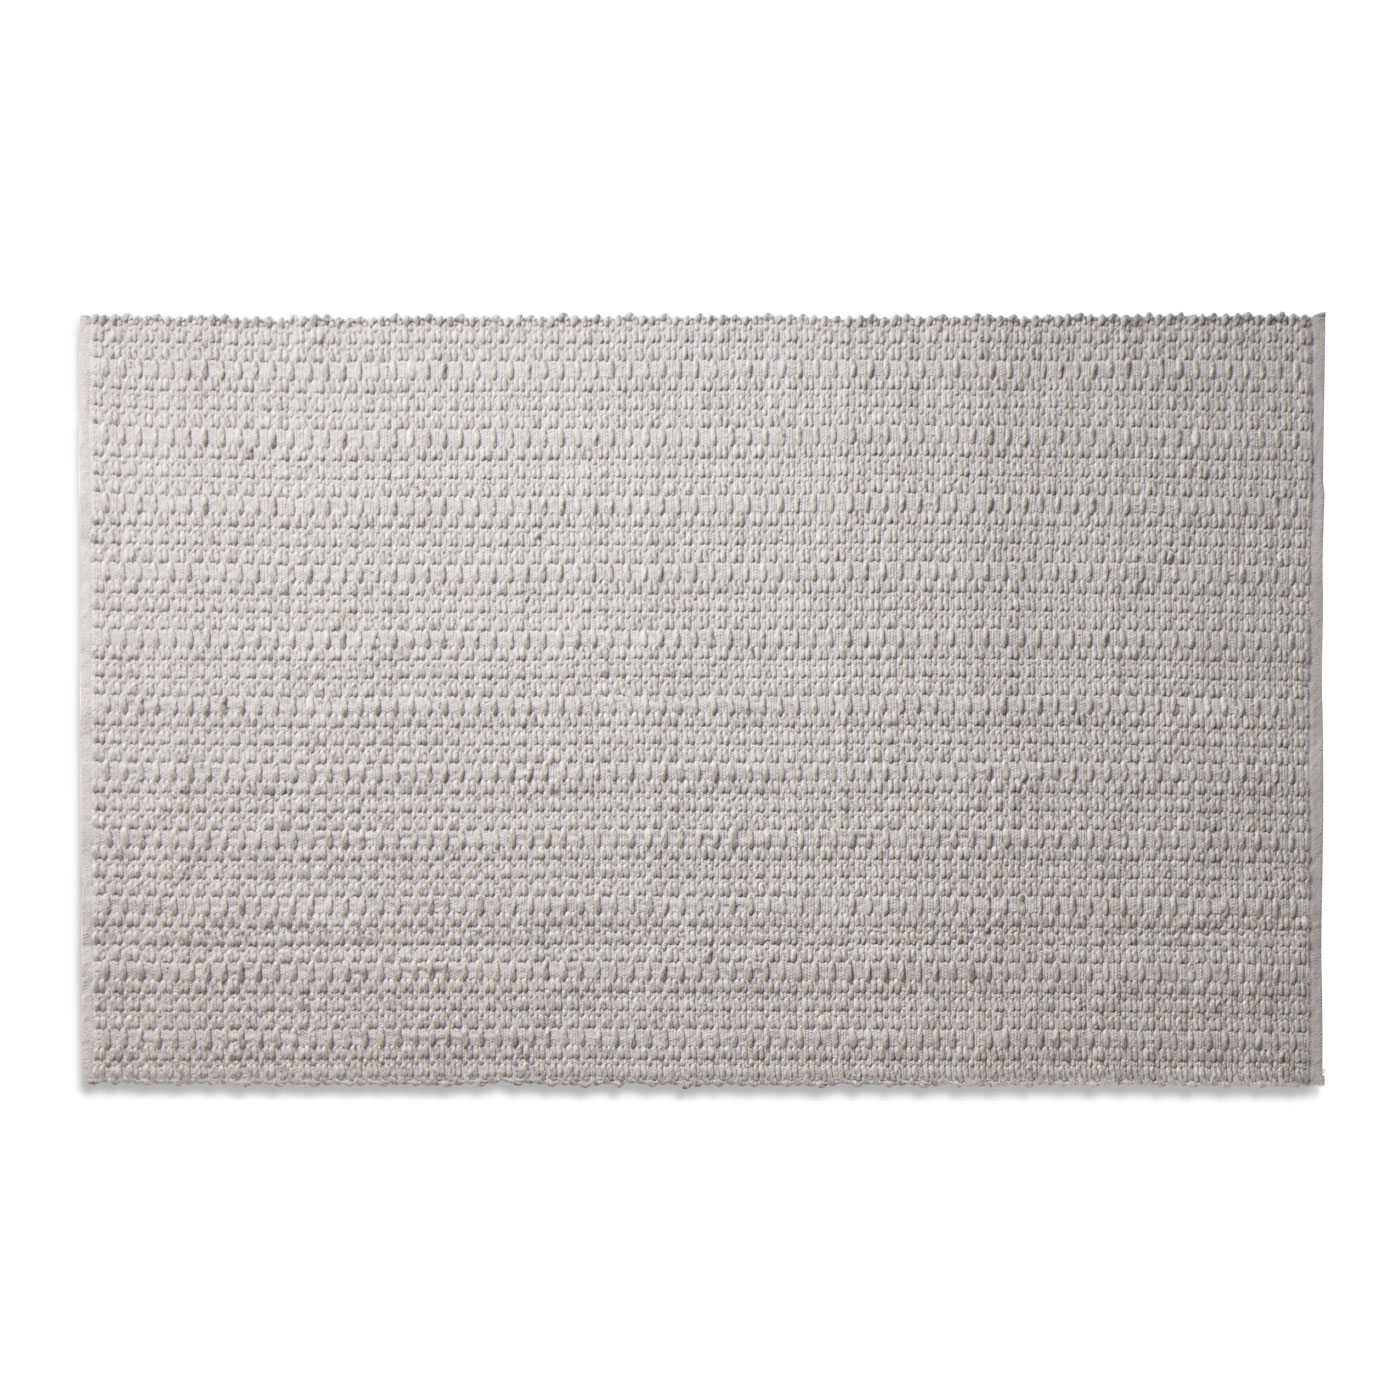 contemporary rug previous image weft 5u0027 x 8u0027 modern area rug in light grey/light heathered LOSDFYF